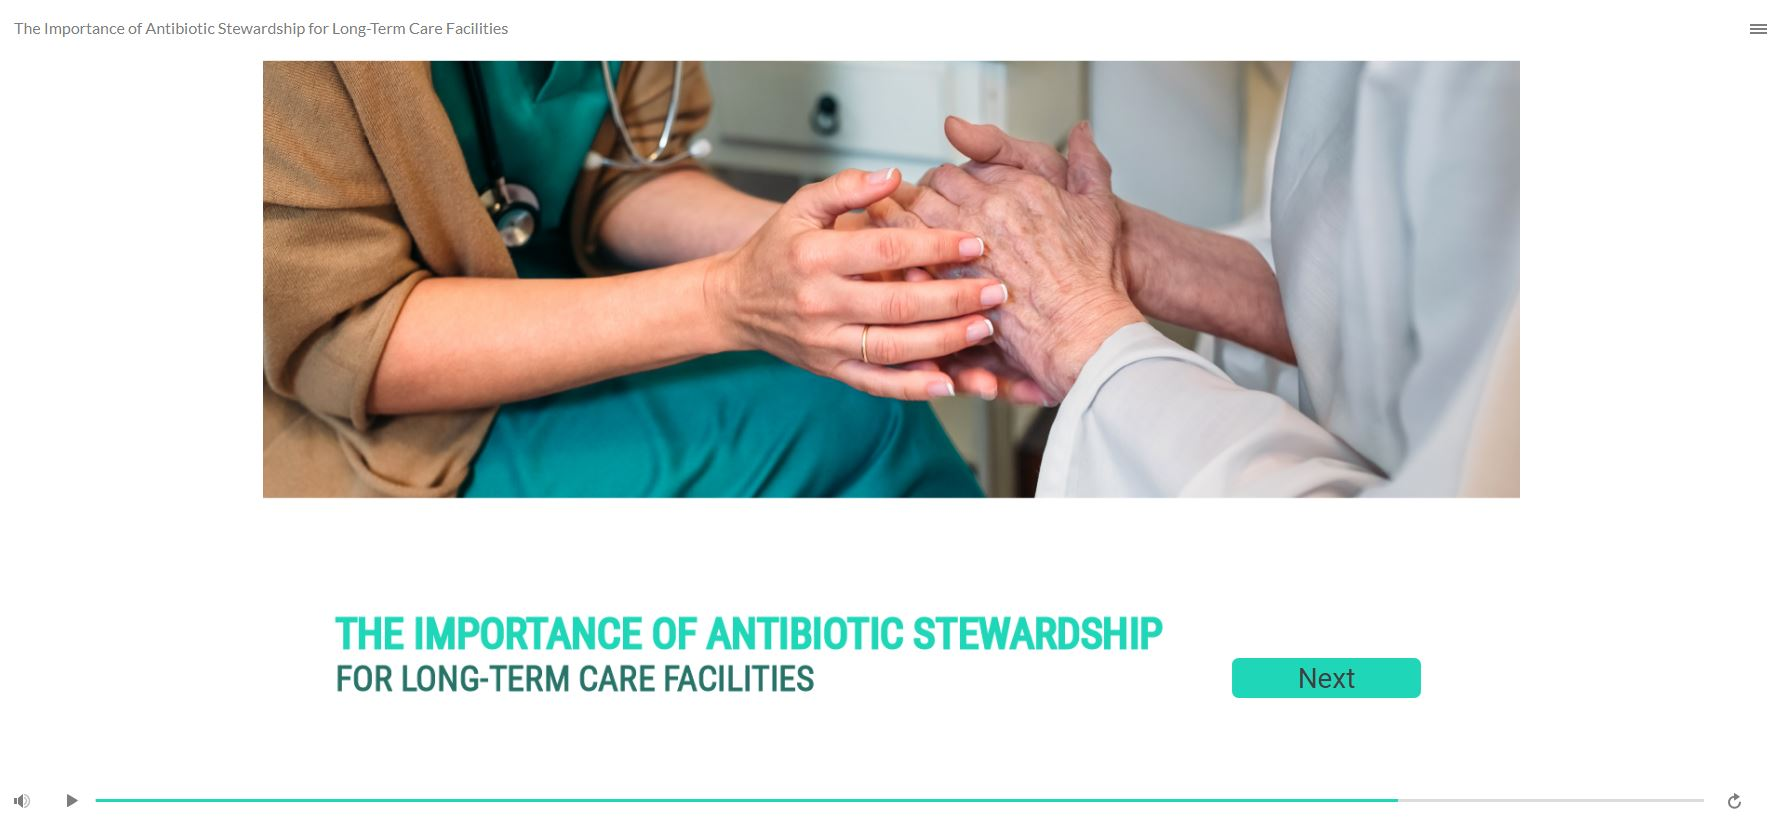 The Importance of Antibiotic Stewardship for Long-Term Care Facilities